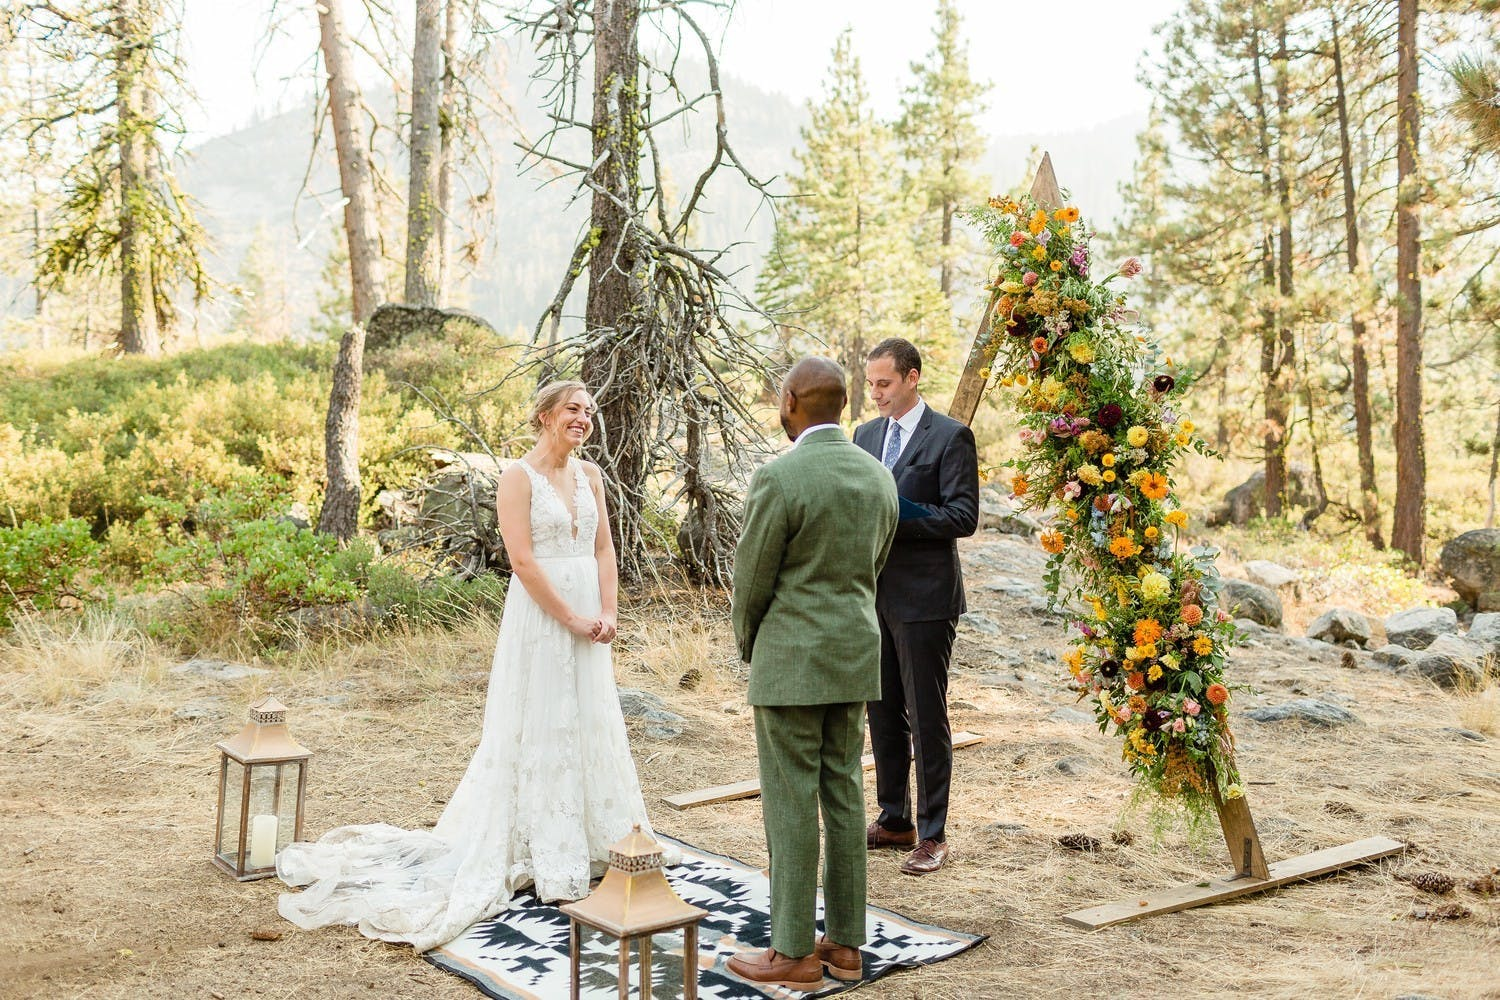 intimate micro wedding ceremony in woods with triangle arch with one side covered in flowers   PartySlate